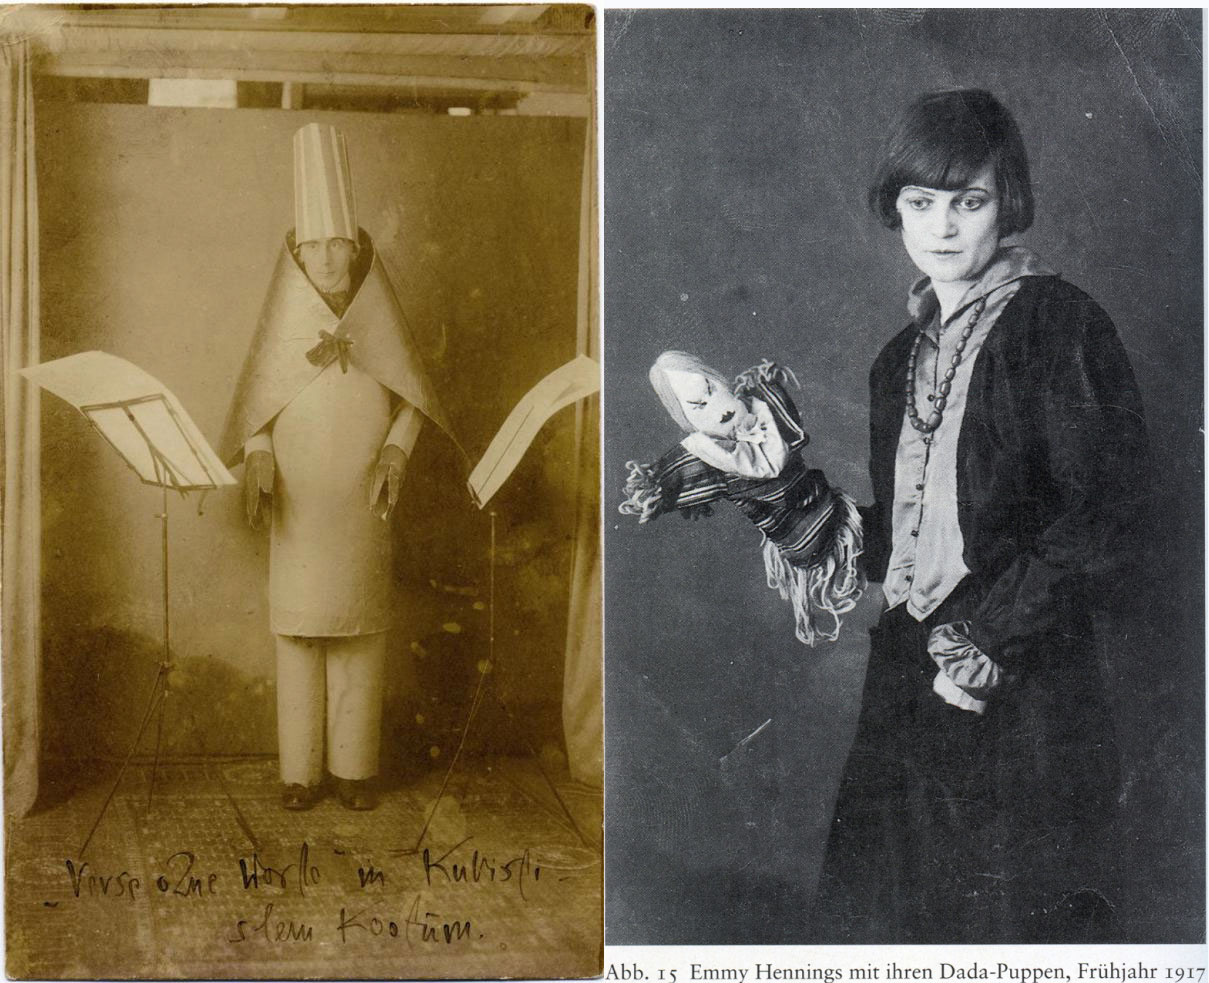 Hugo Ball + Emmy Hennings: Cabaret Voltaire 1916